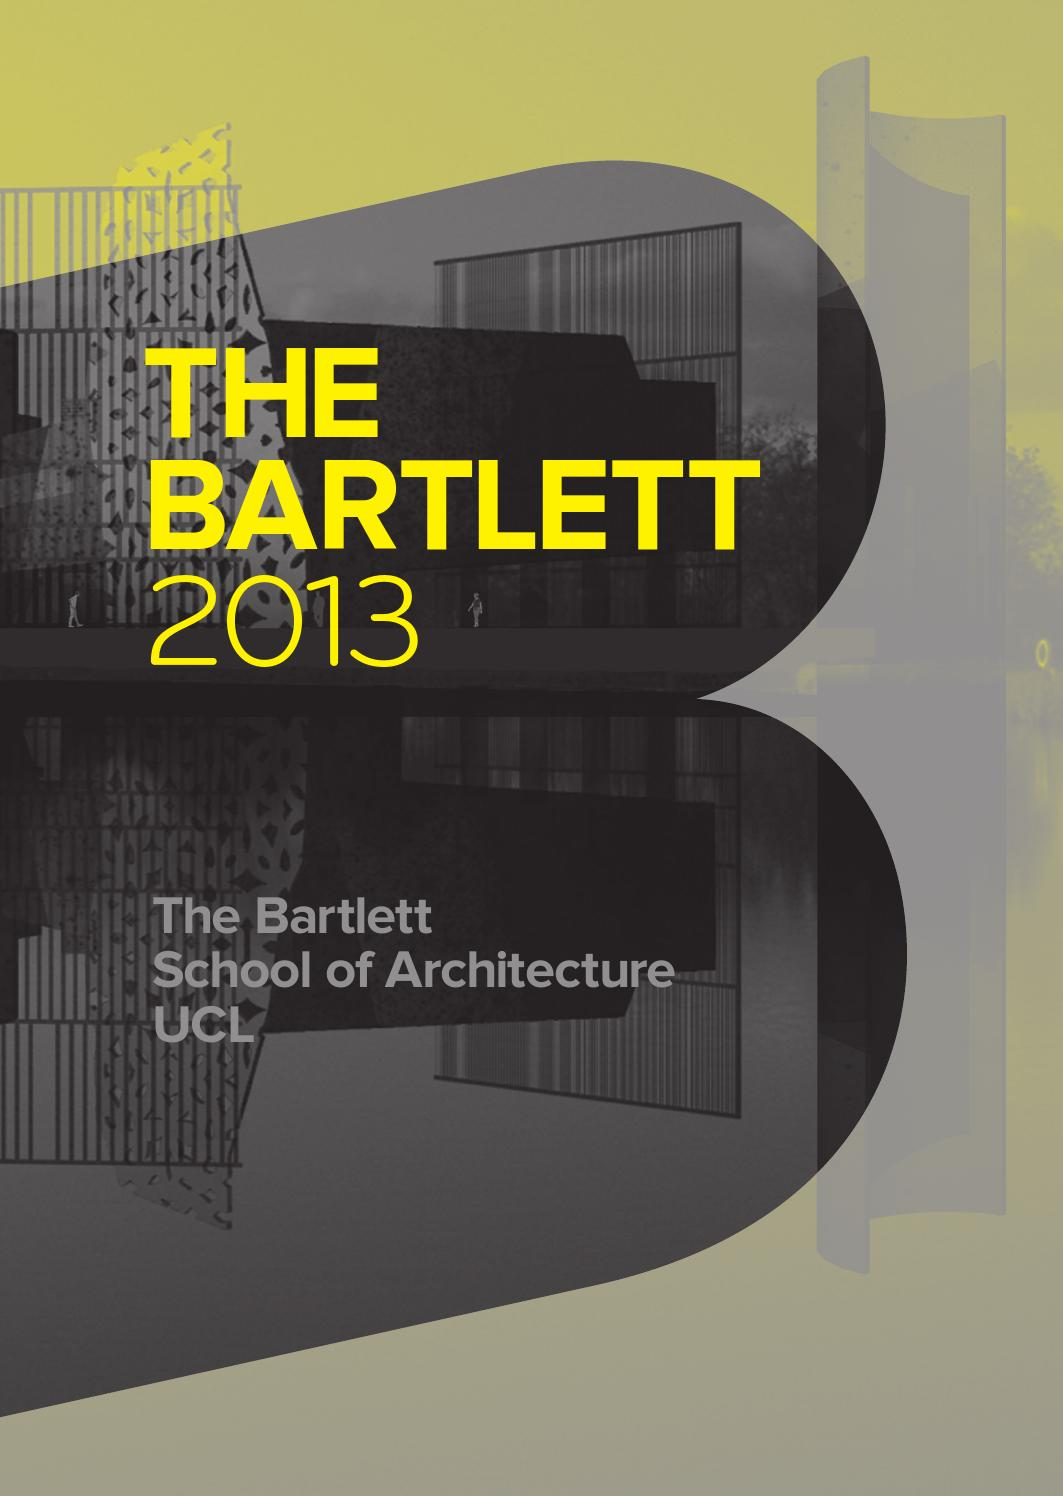 7b7c5161570 The Bartlett Book 2013 by The Bartlett School of Architecture UCL - issuu